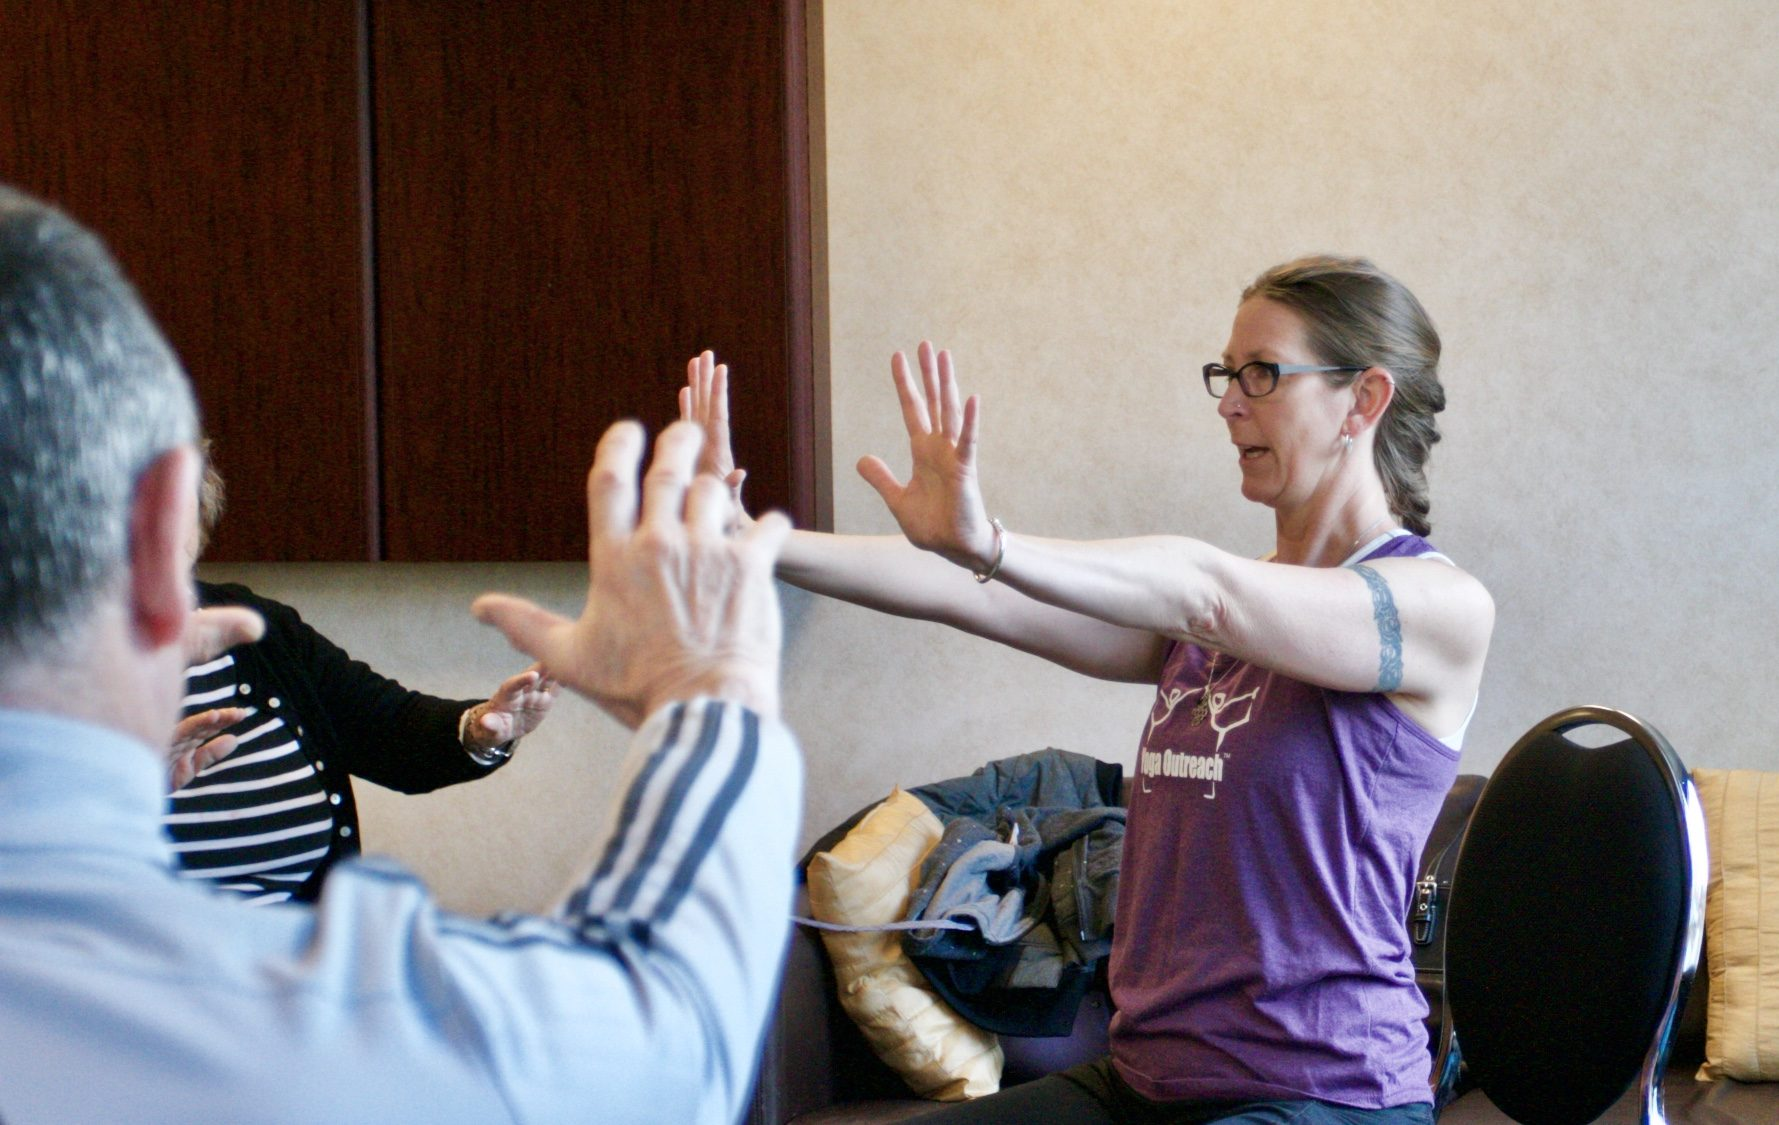 Yoga OUtreach volunteer instructor leading a class with seniors with early onset dementia